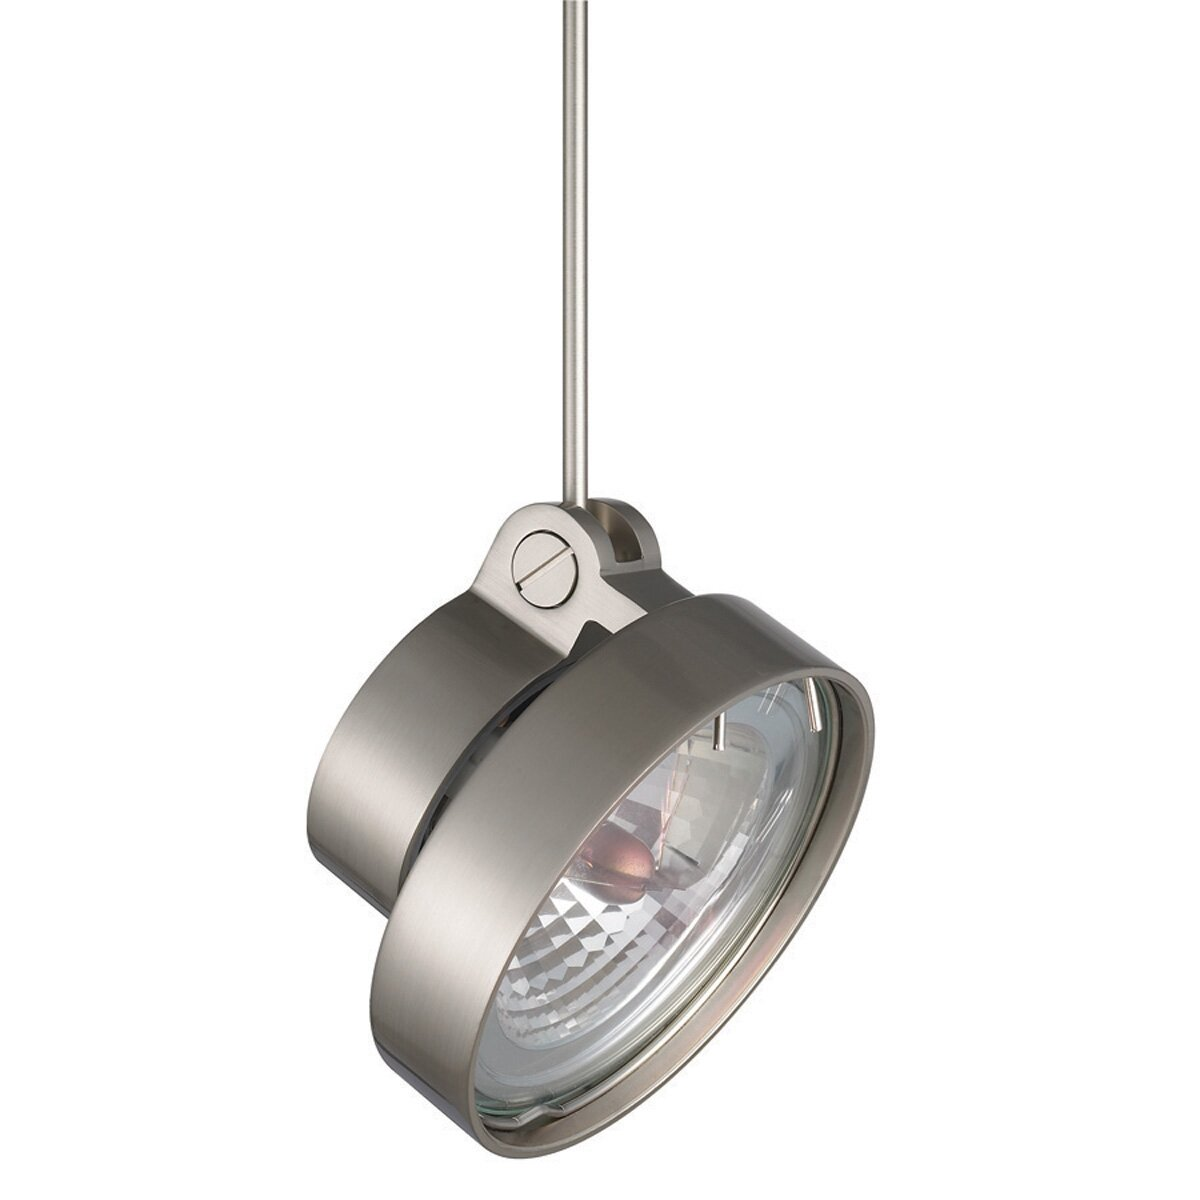 Flexible Track Lighting With Hanging Pendants: WAC Lighting 1 Light Quick Connect Flexible Stem Track